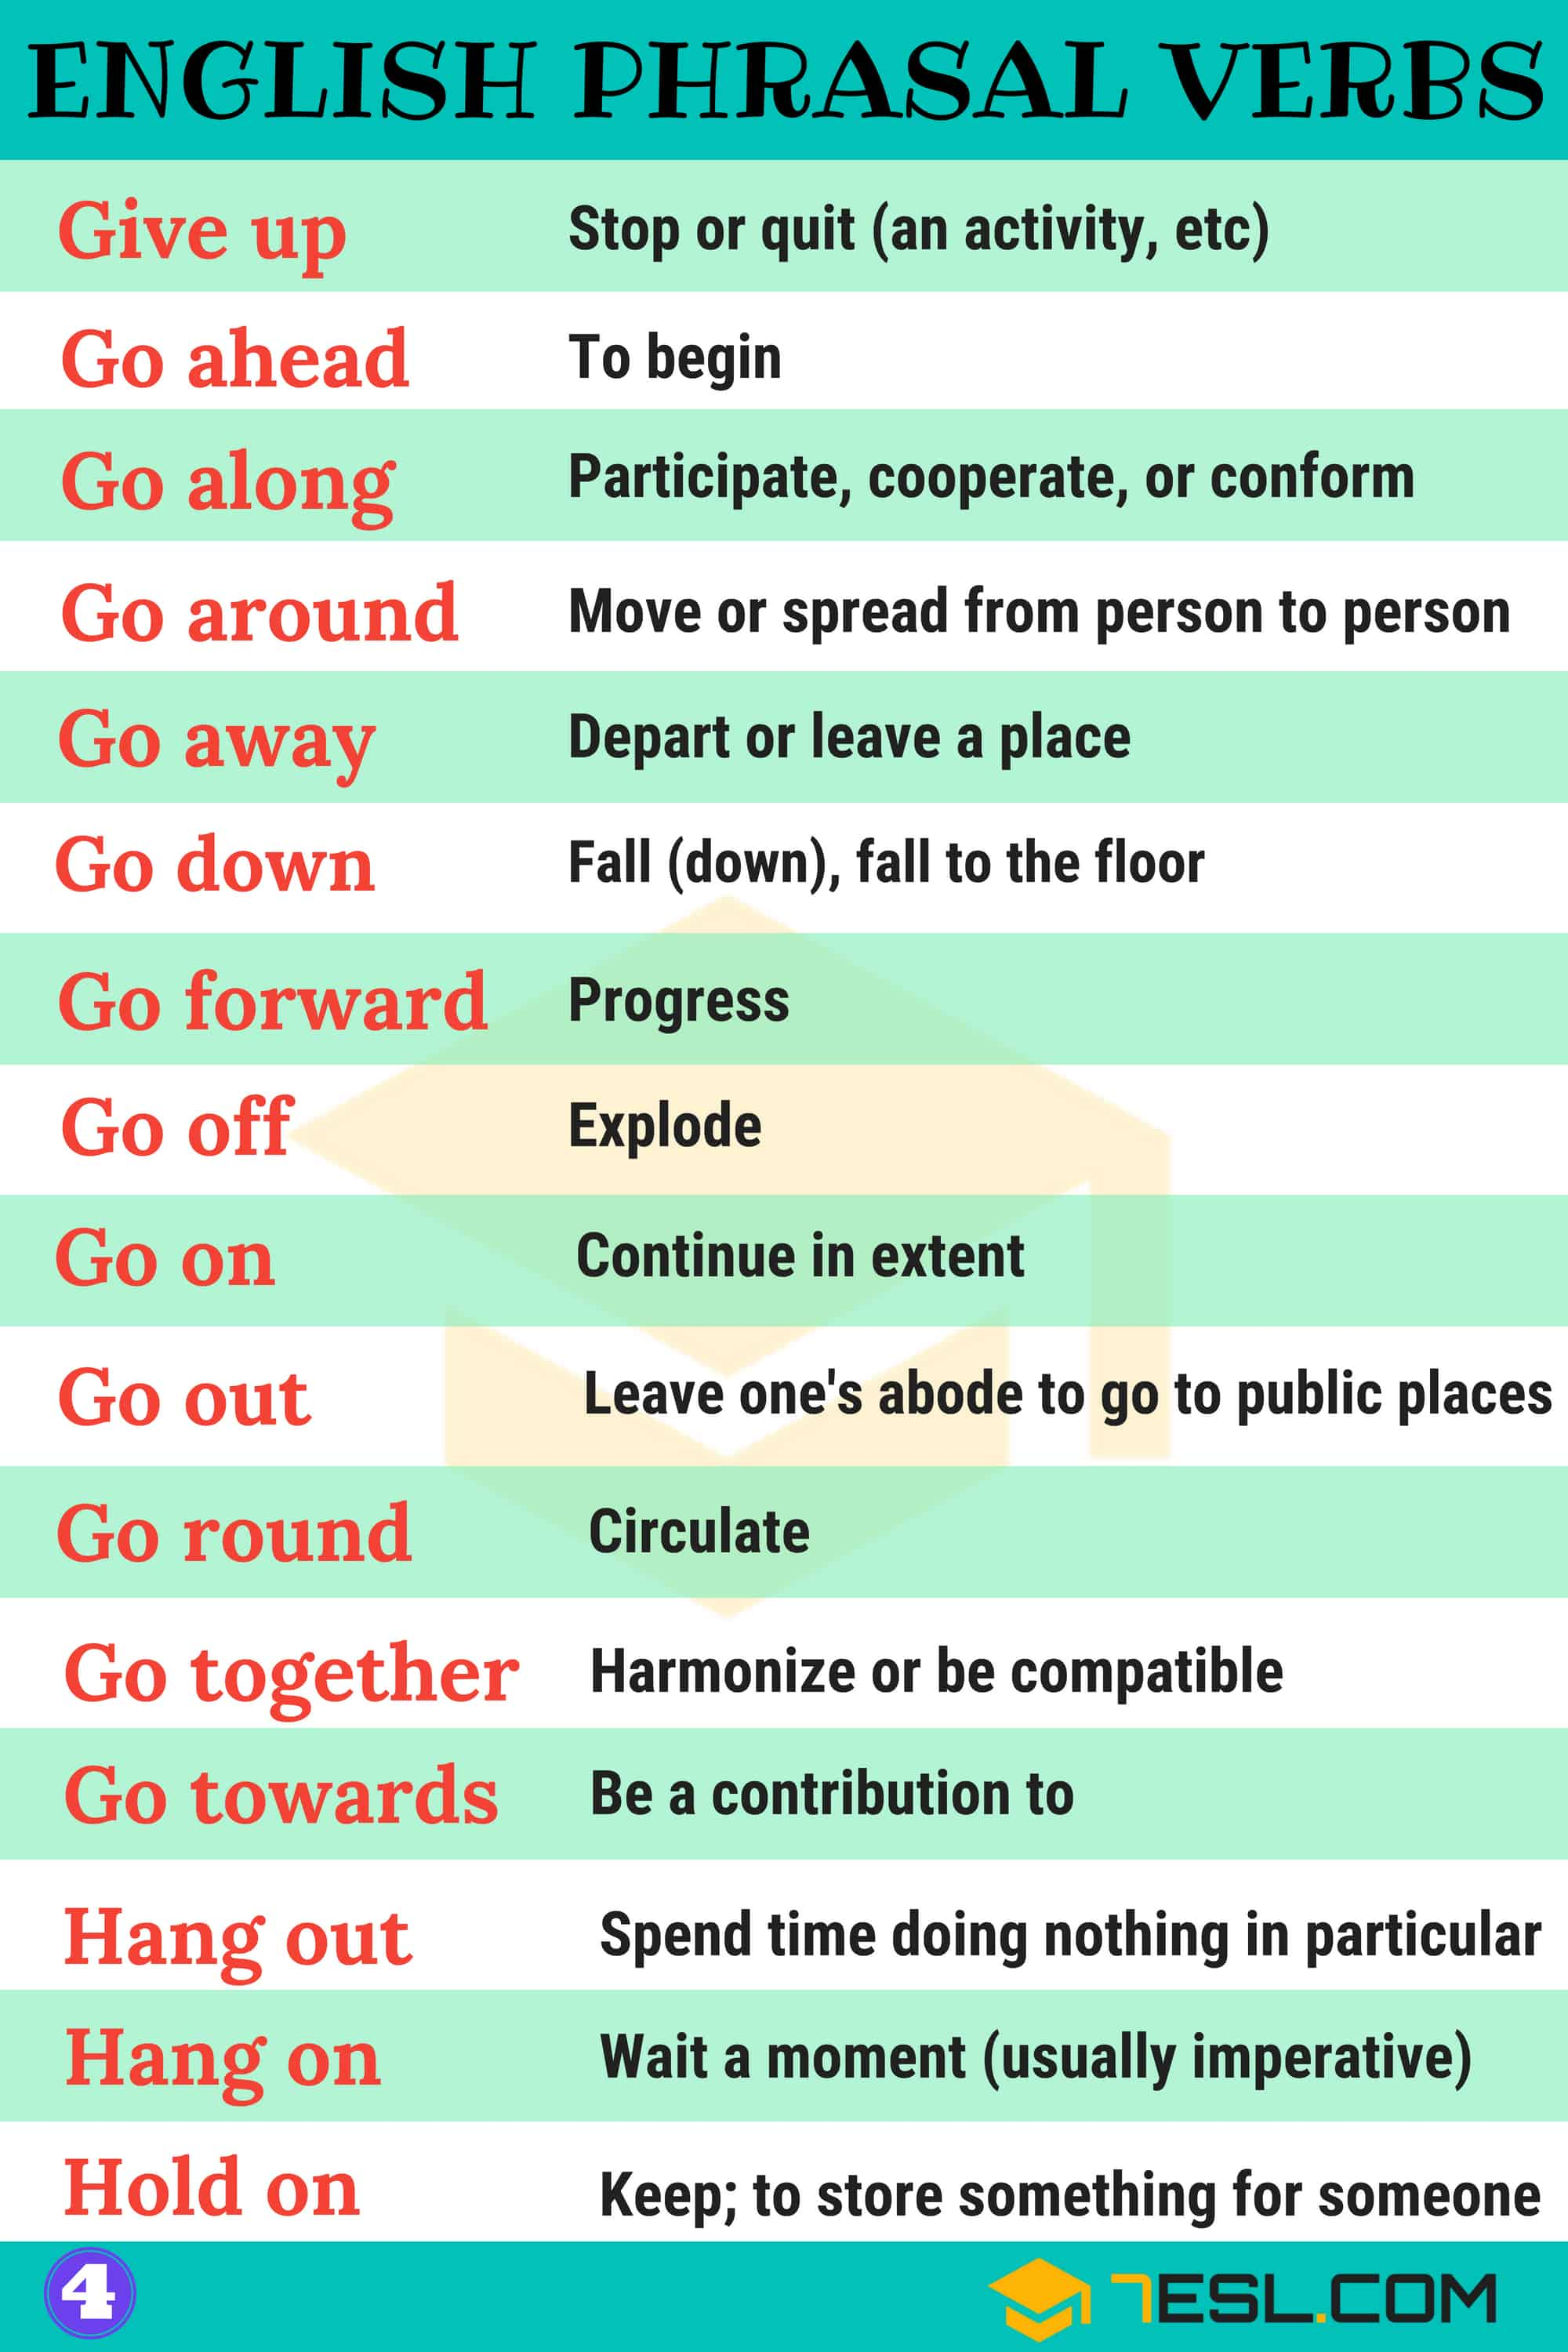 2000+ Common Phrasal Verbs in English and Their Meanings